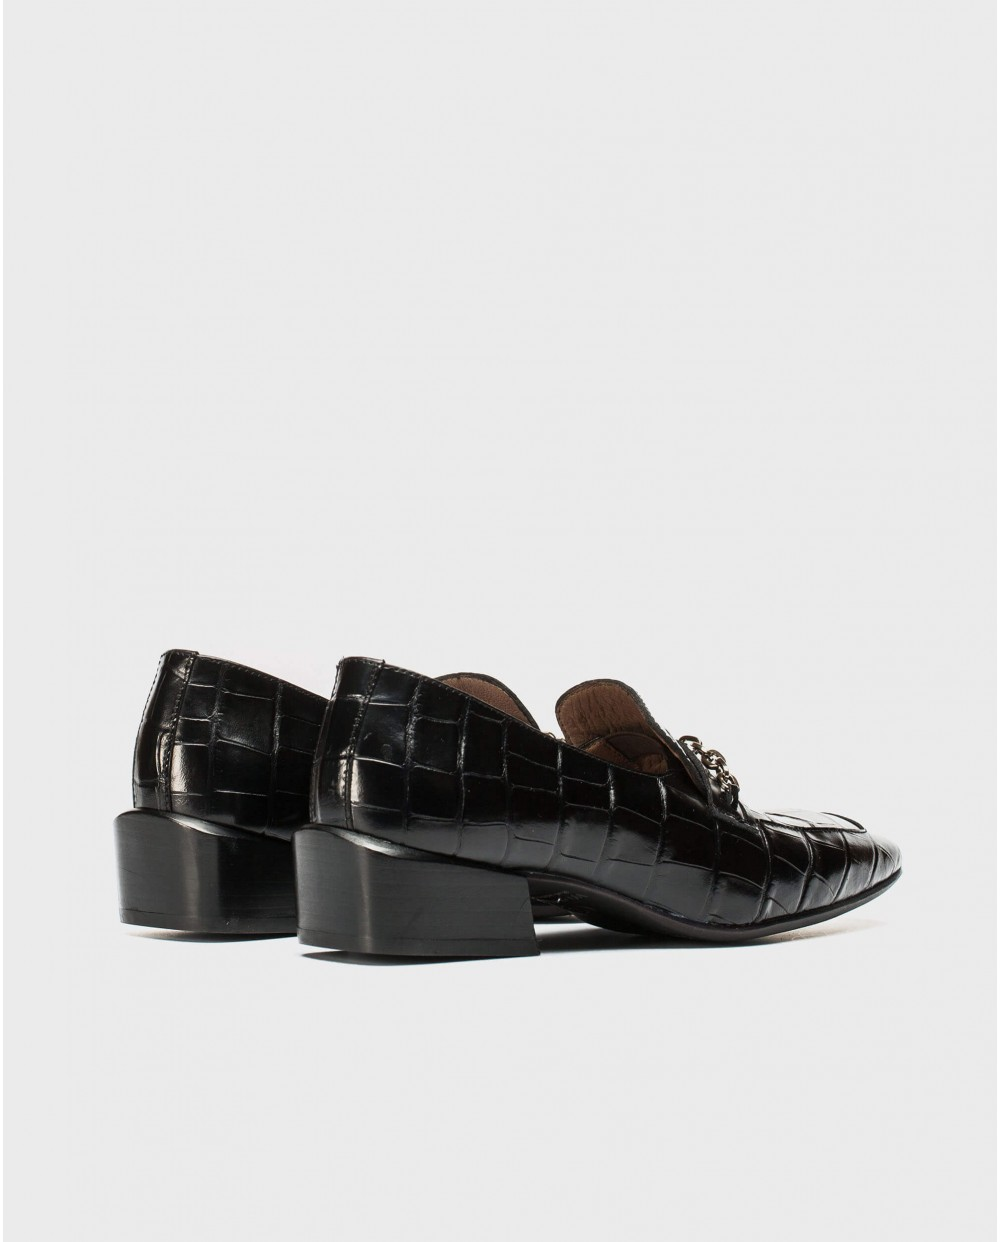 Wonders-Flat Shoes-Crocodile and chain moccasin